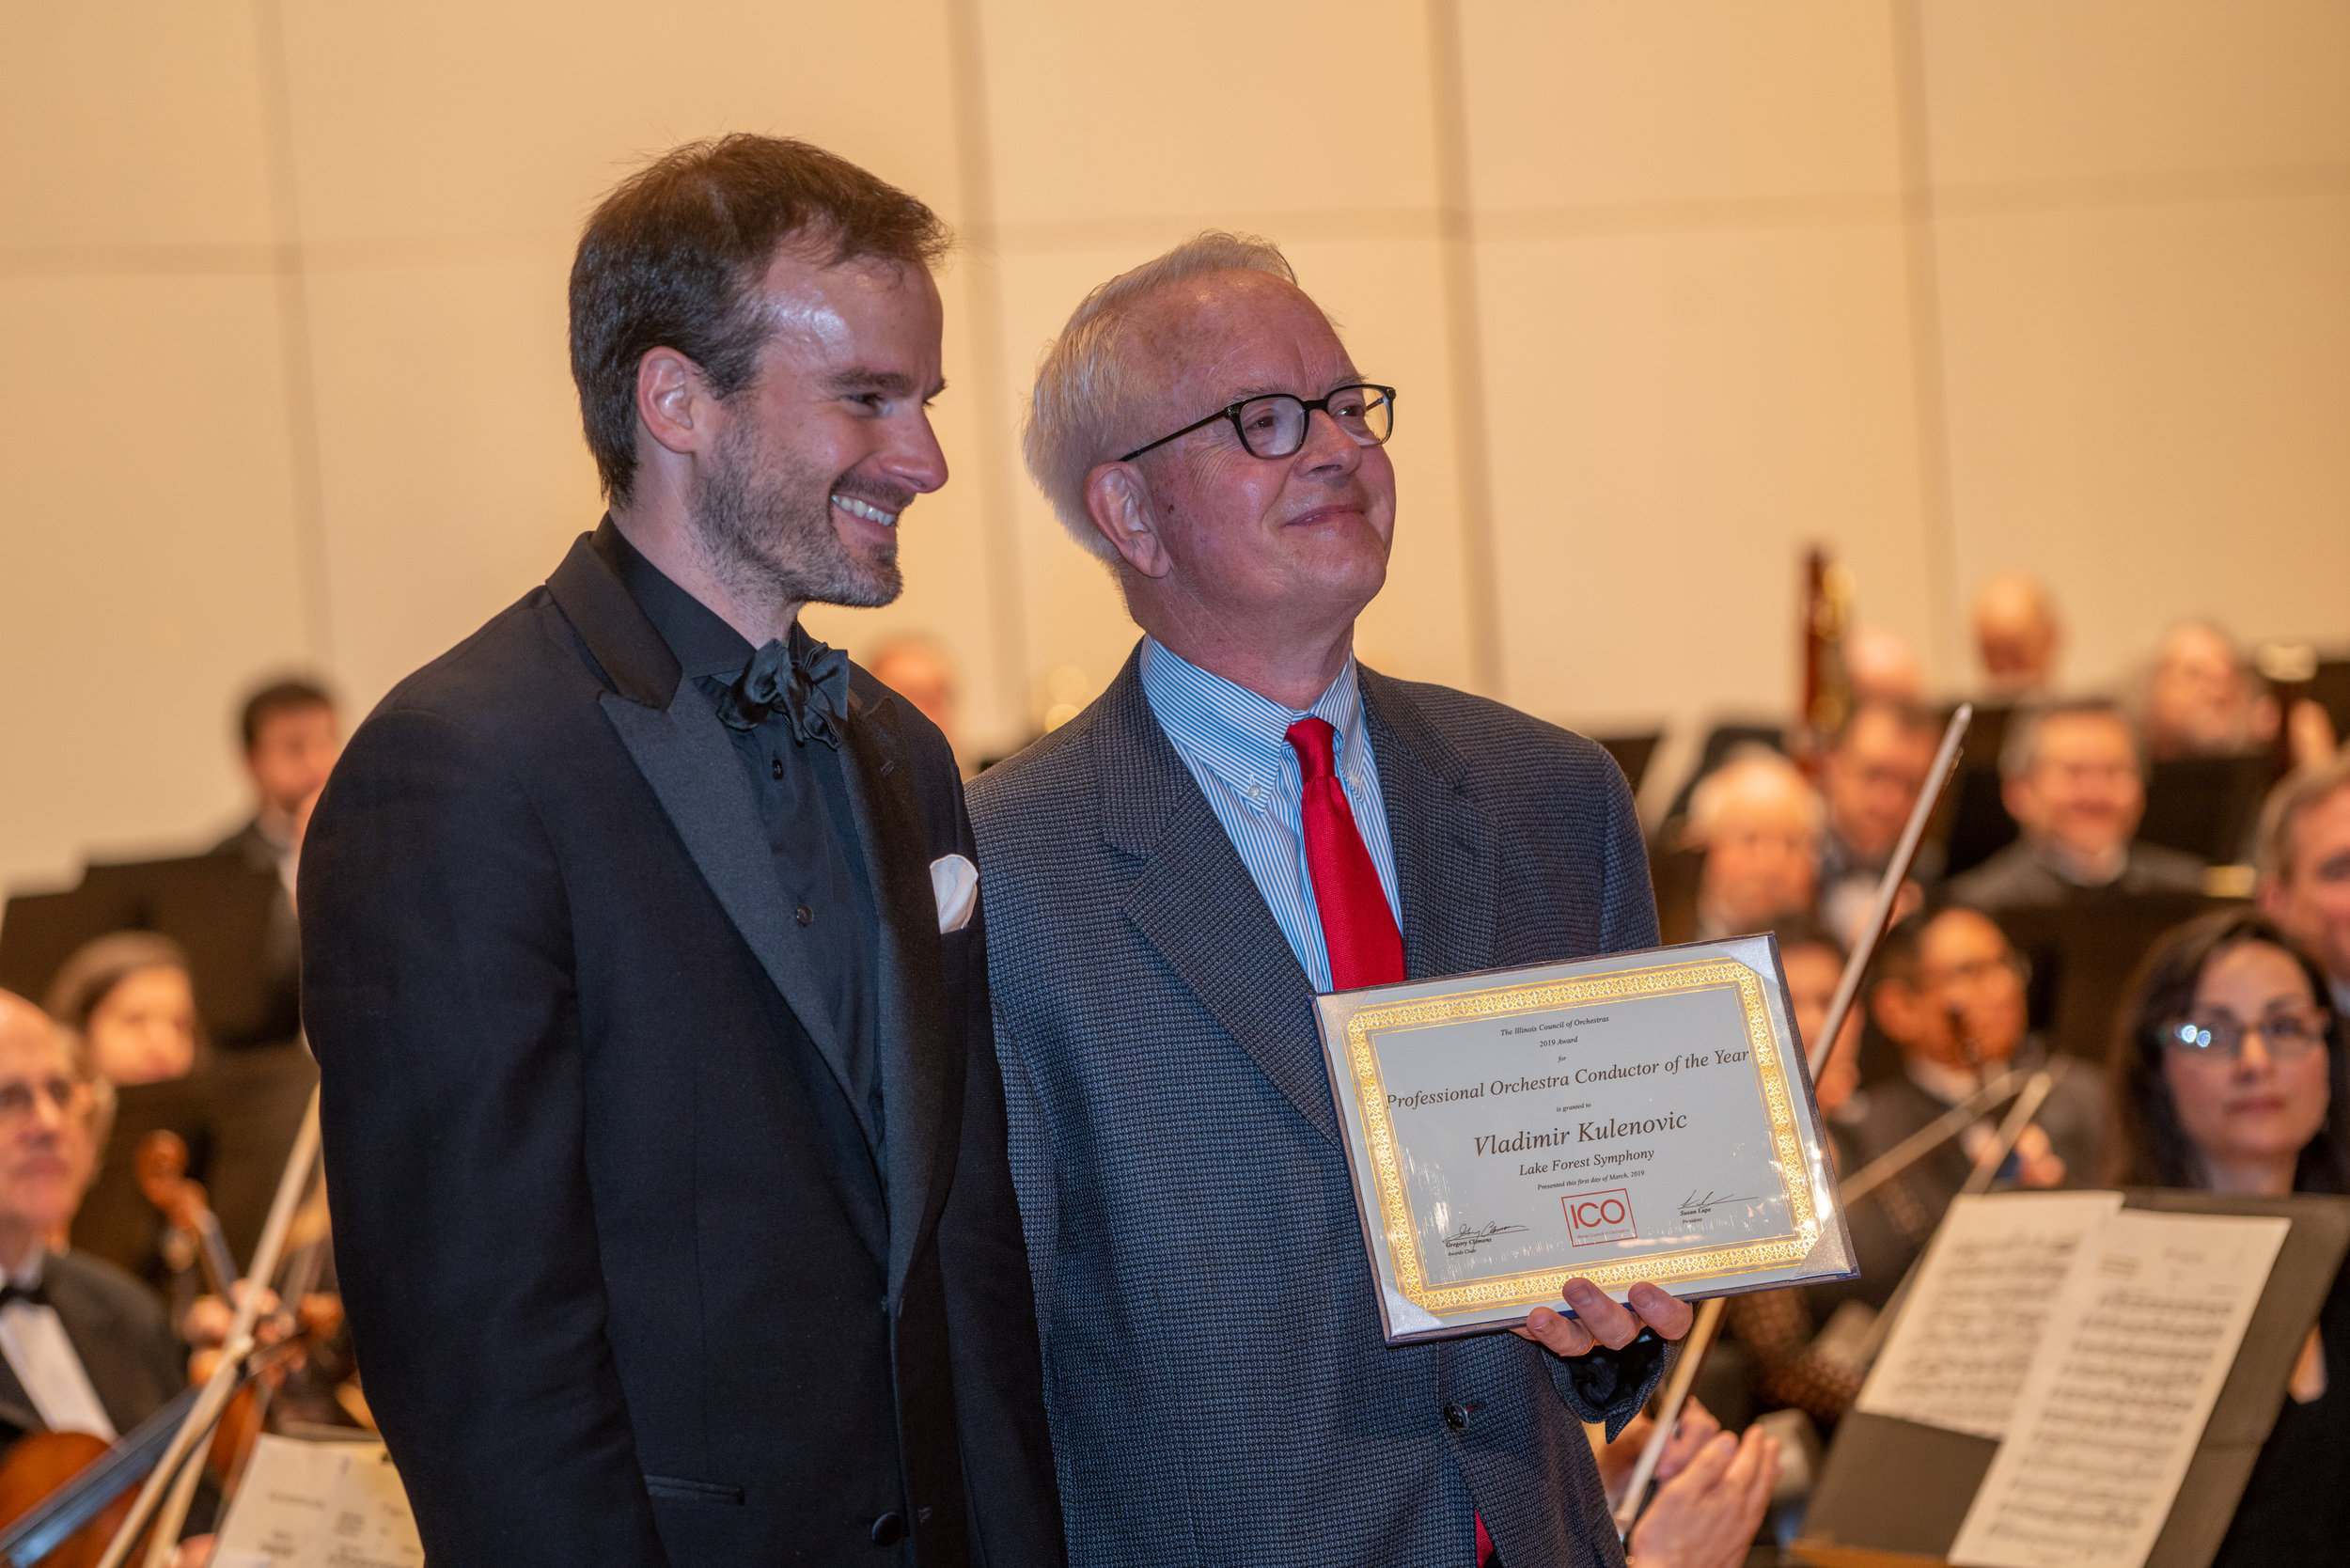 Music Director Vladimir Kulenovic accepts the award for Conductor of the Year from Tom Sharp and the Illinois Council of Orchestras.